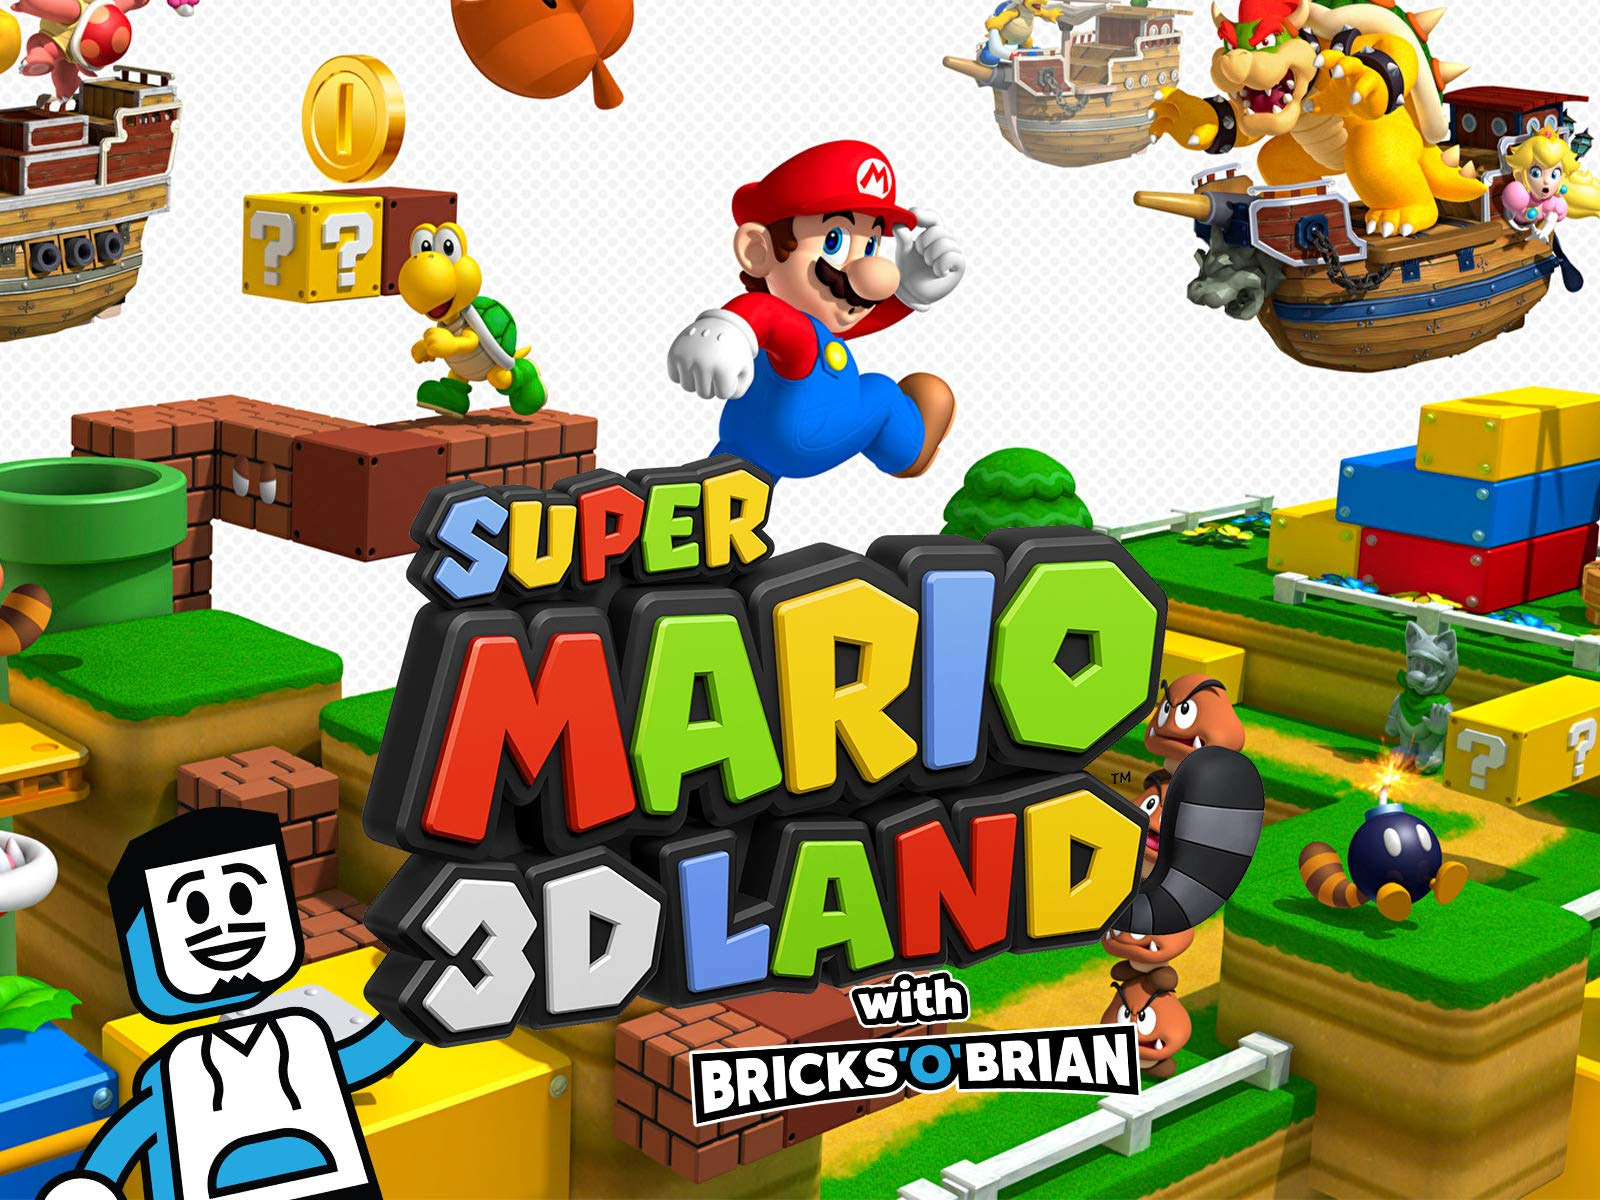 Watch Clip Super Mario 3d Land With Bricks O Brian On Amazon